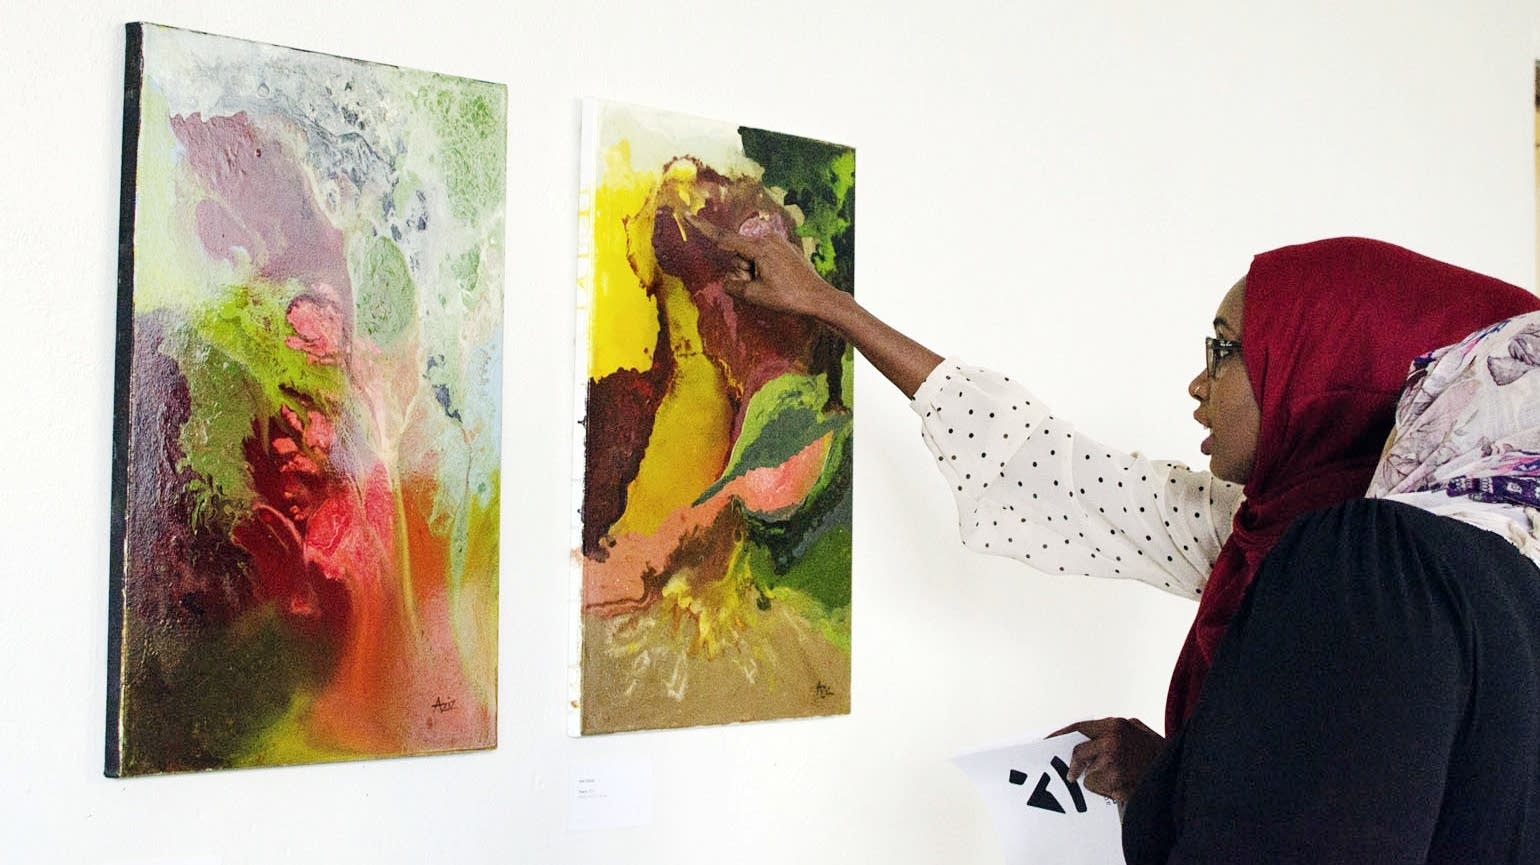 Jihan Ali and a friend examine abstract paintings.